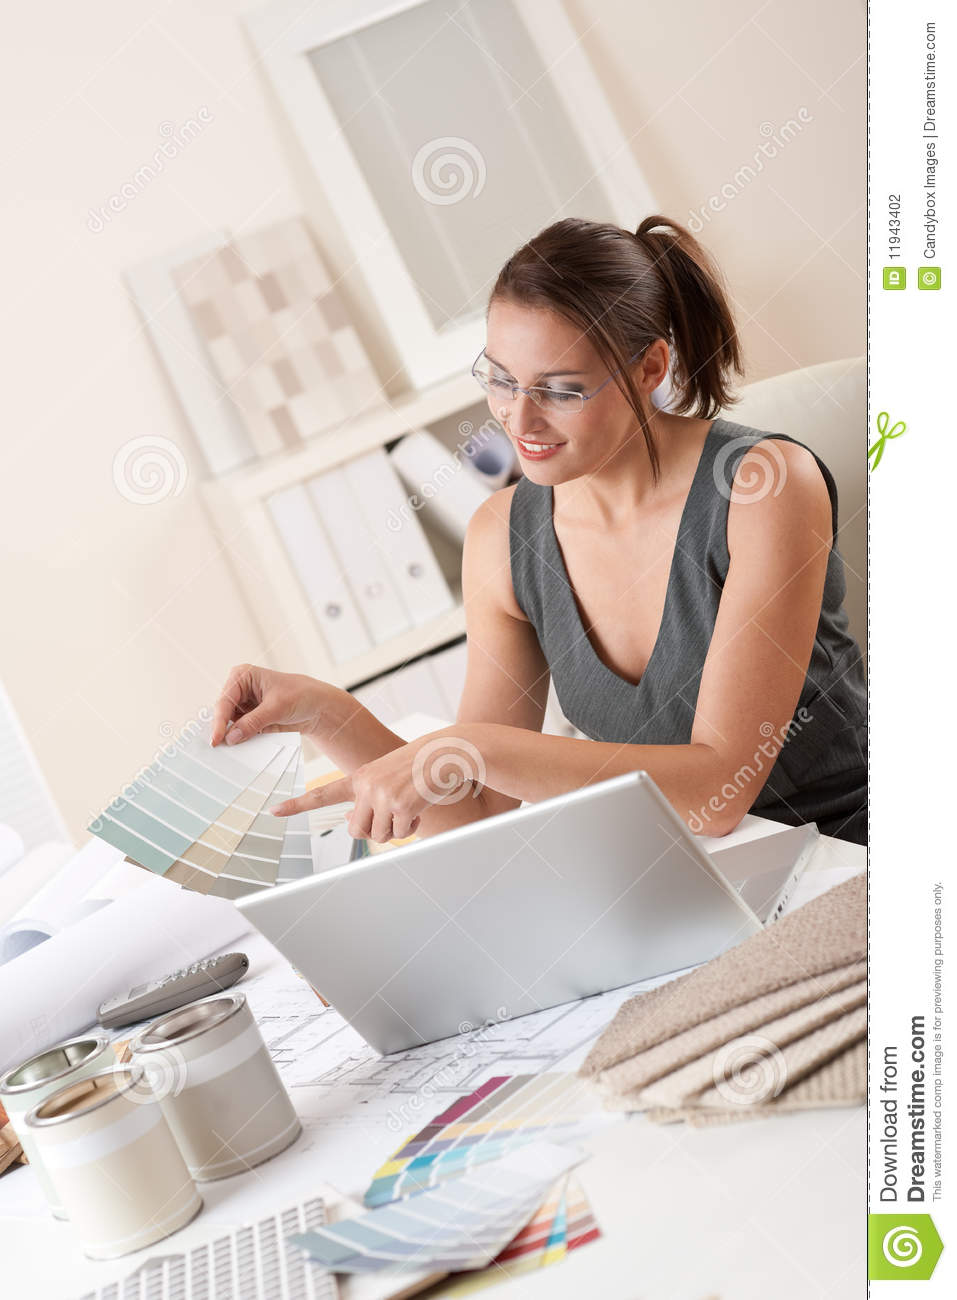 Female Interior Designer Working At Office Stock